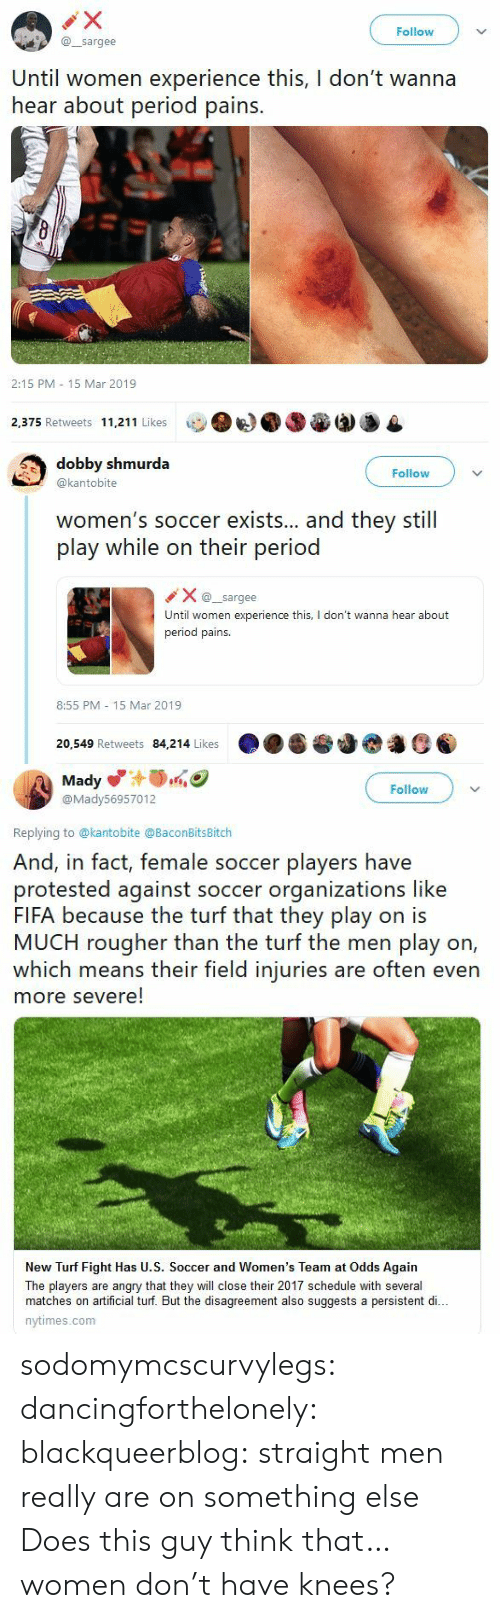 turf: Follow  @sargee  Until women experience this, I don't wanna  hear about period pains.  2:15 PM 15 Mar 2019  2,375 Retweets 11,211 Likes   dobby shmurda  @kantobite  Follow  women's soccer exists... and they still  play while on their period  Xsargee  Until women experience this, I don't wanna hear about  period pains.  8:55 PM 15 Mar 2019  20,549 Retweets 84,214 Likes   Mady  @Mady56957012  Follow  Replying to @kantobite @BaconBitsBitch  And, in fact, female soccer players have  protested against soccer organizations like  FIFA because the turf that they play on is  MUCH rougher than the turf the men play on,  which means their field injuries are often even  more severe!  New Turf Fight Has U.S. Soccer and Women's Team at Odds Again  The players are angry that they will close their 2017 schedule with several  matches on artificial turf. But the disagreement also suggests a persistent di..  nytimes.com sodomymcscurvylegs: dancingforthelonely:  blackqueerblog:   straight men really are on something else    Does this guy think that…women don't have knees?